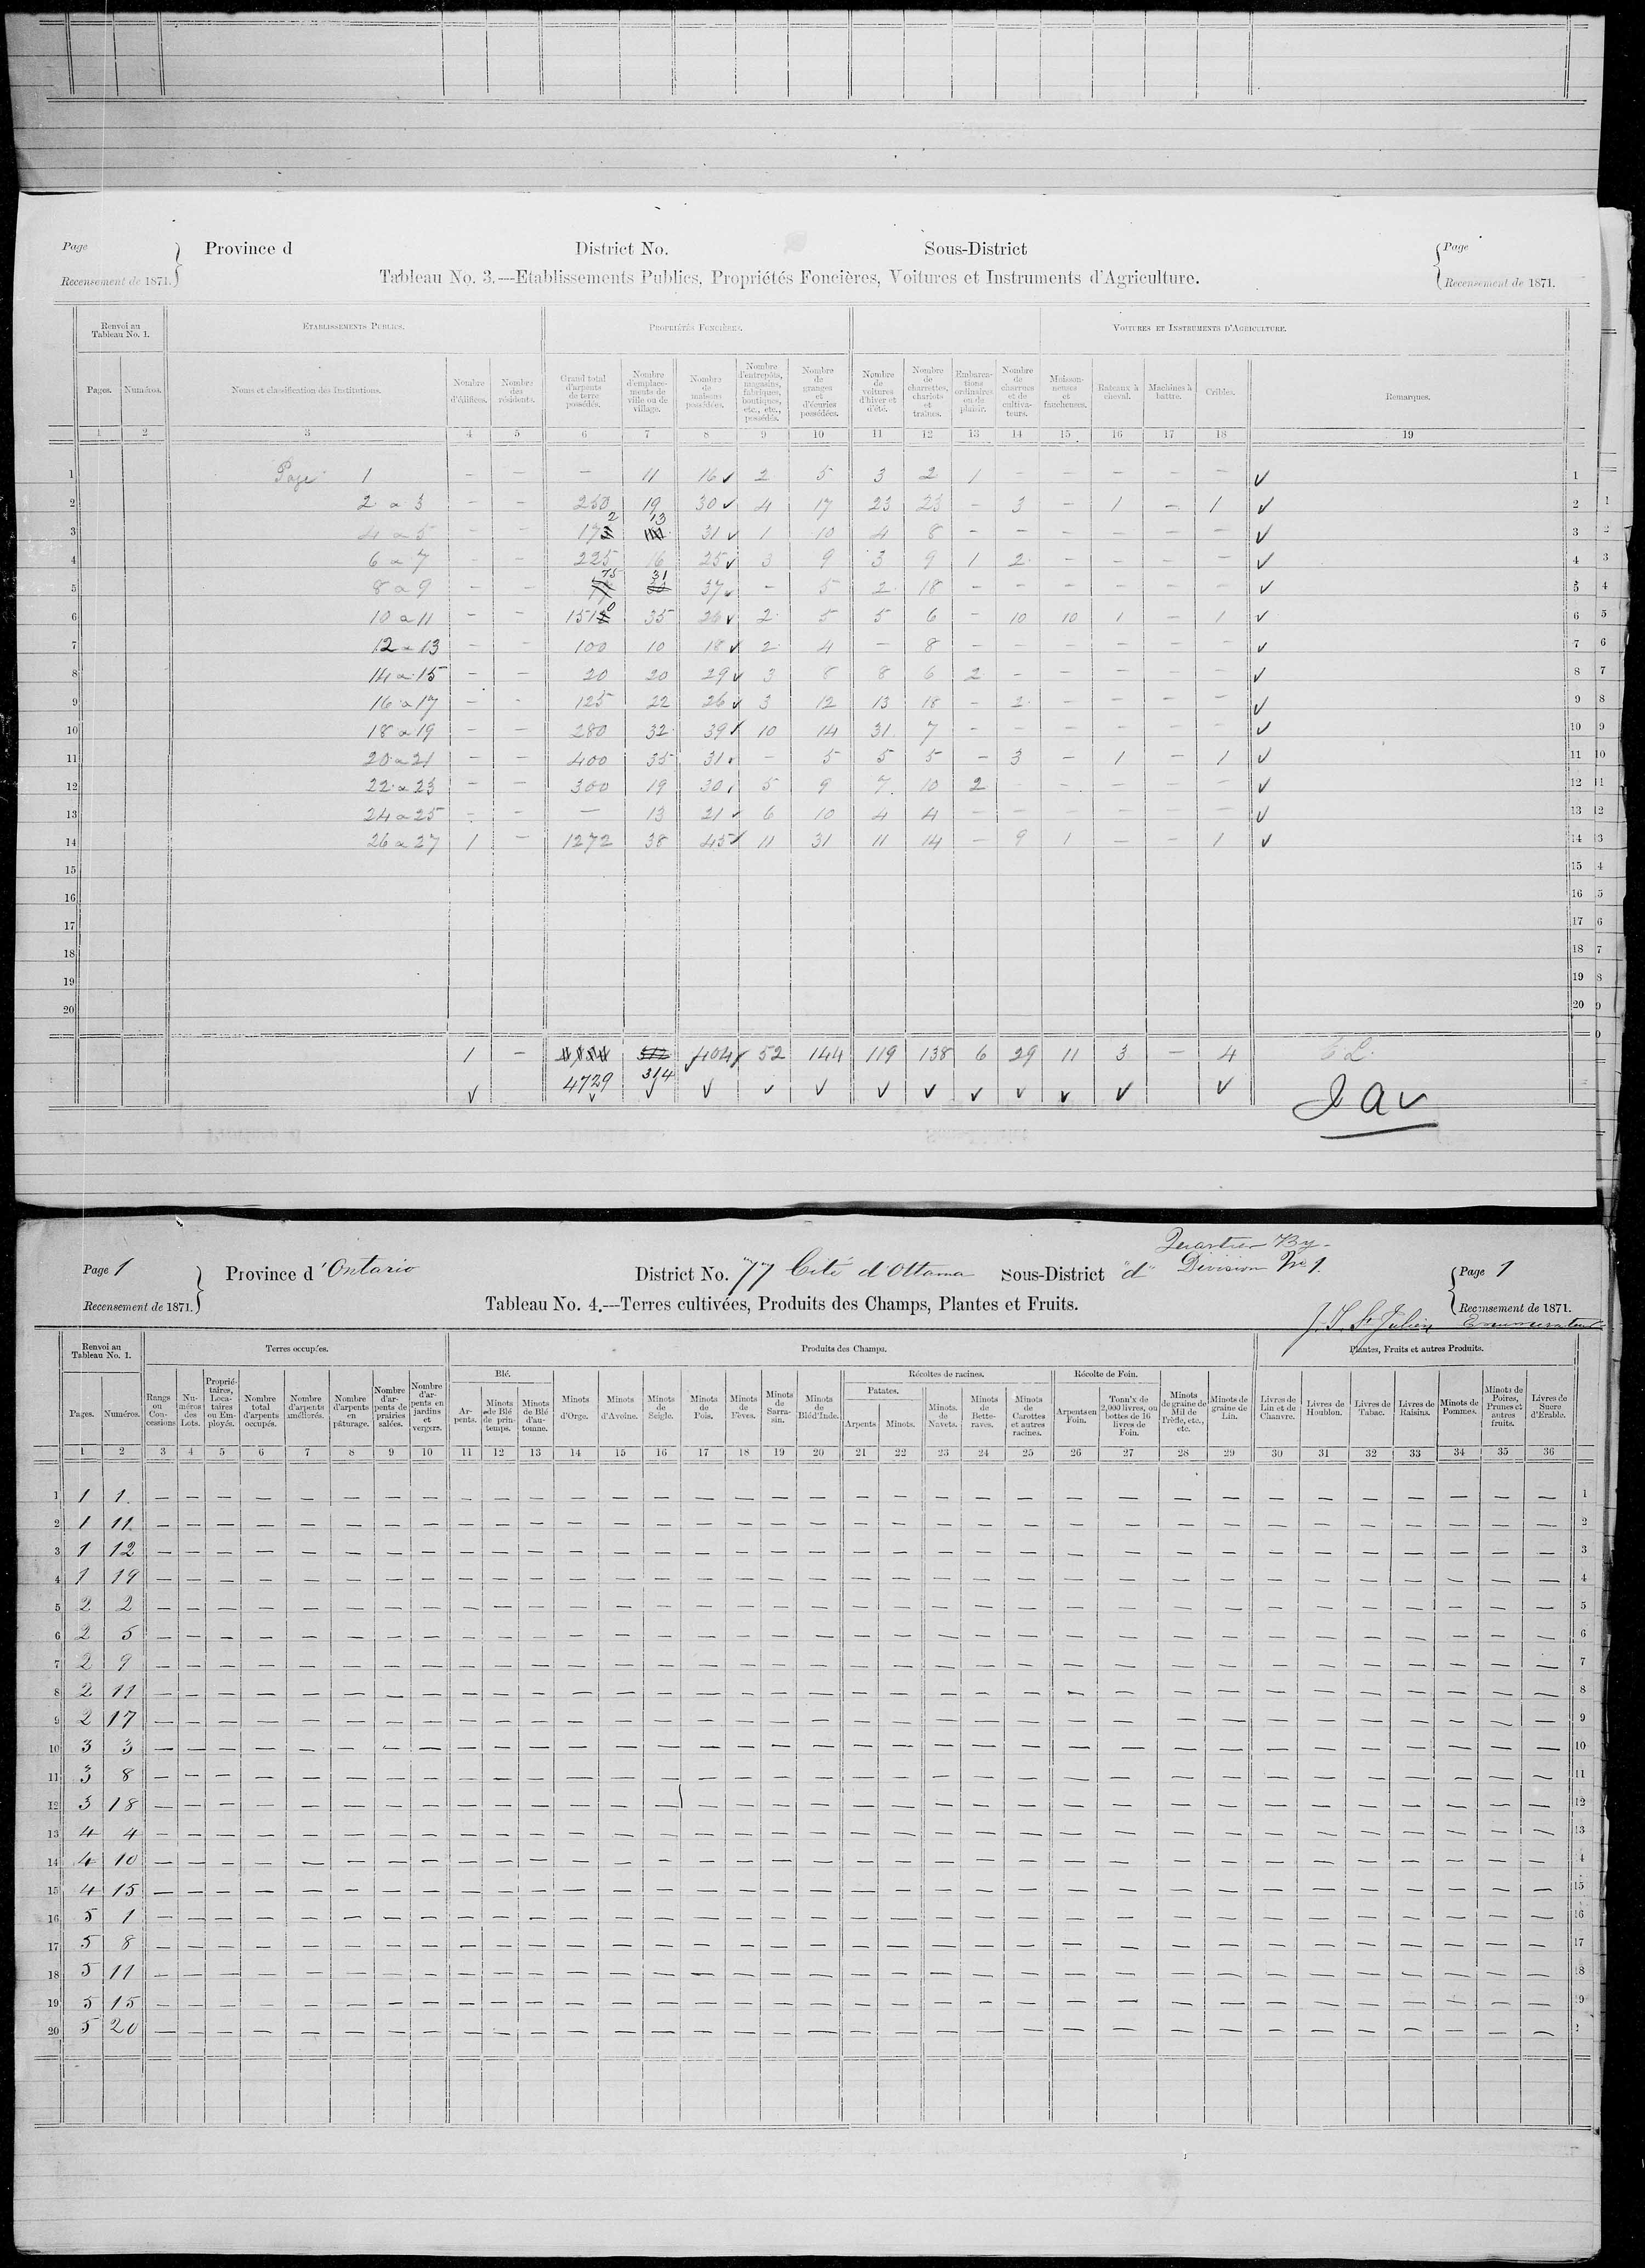 Title: Census of Canada, 1871 - Mikan Number: 142105 - Microform: c-10014